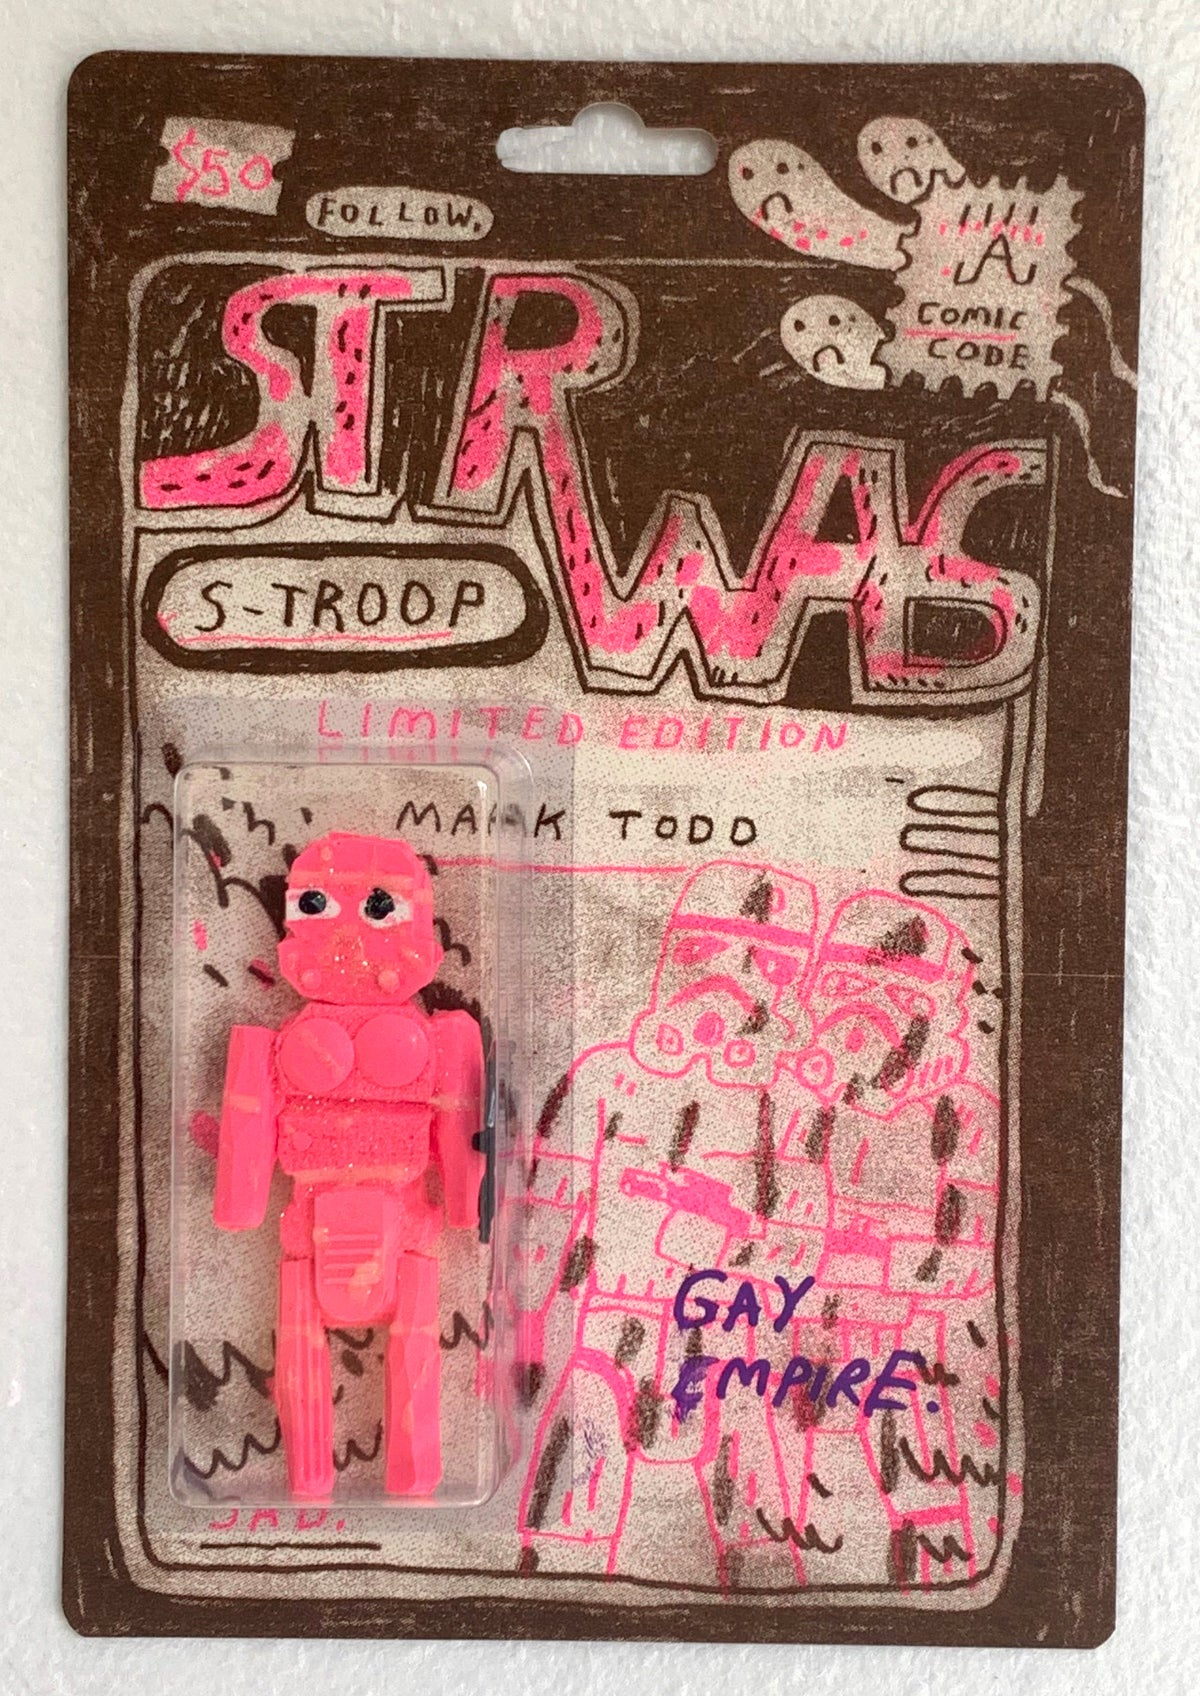 (Mark Todd) S-TROOP pink sucklord